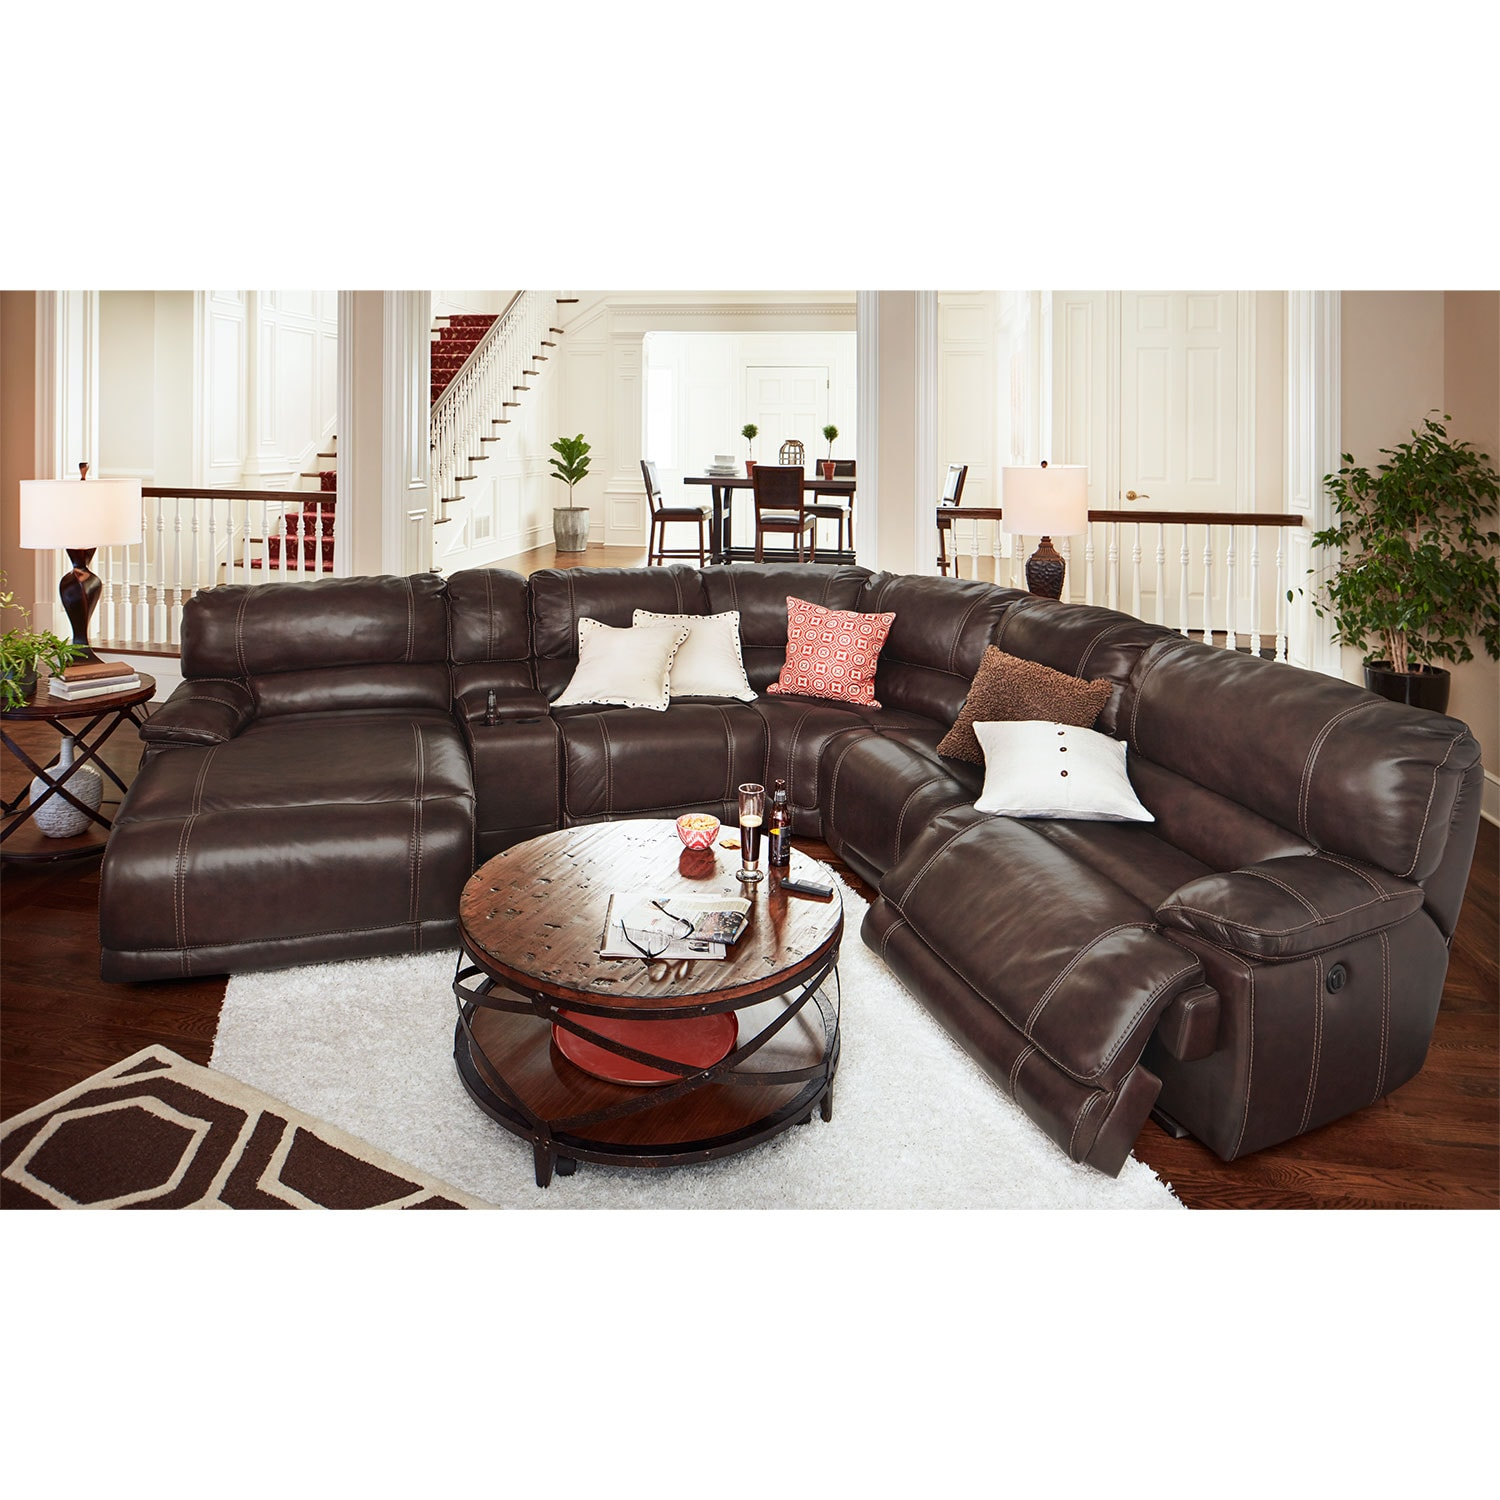 designs cl mirak brown sectional seated left chaise scandinavian products lsc